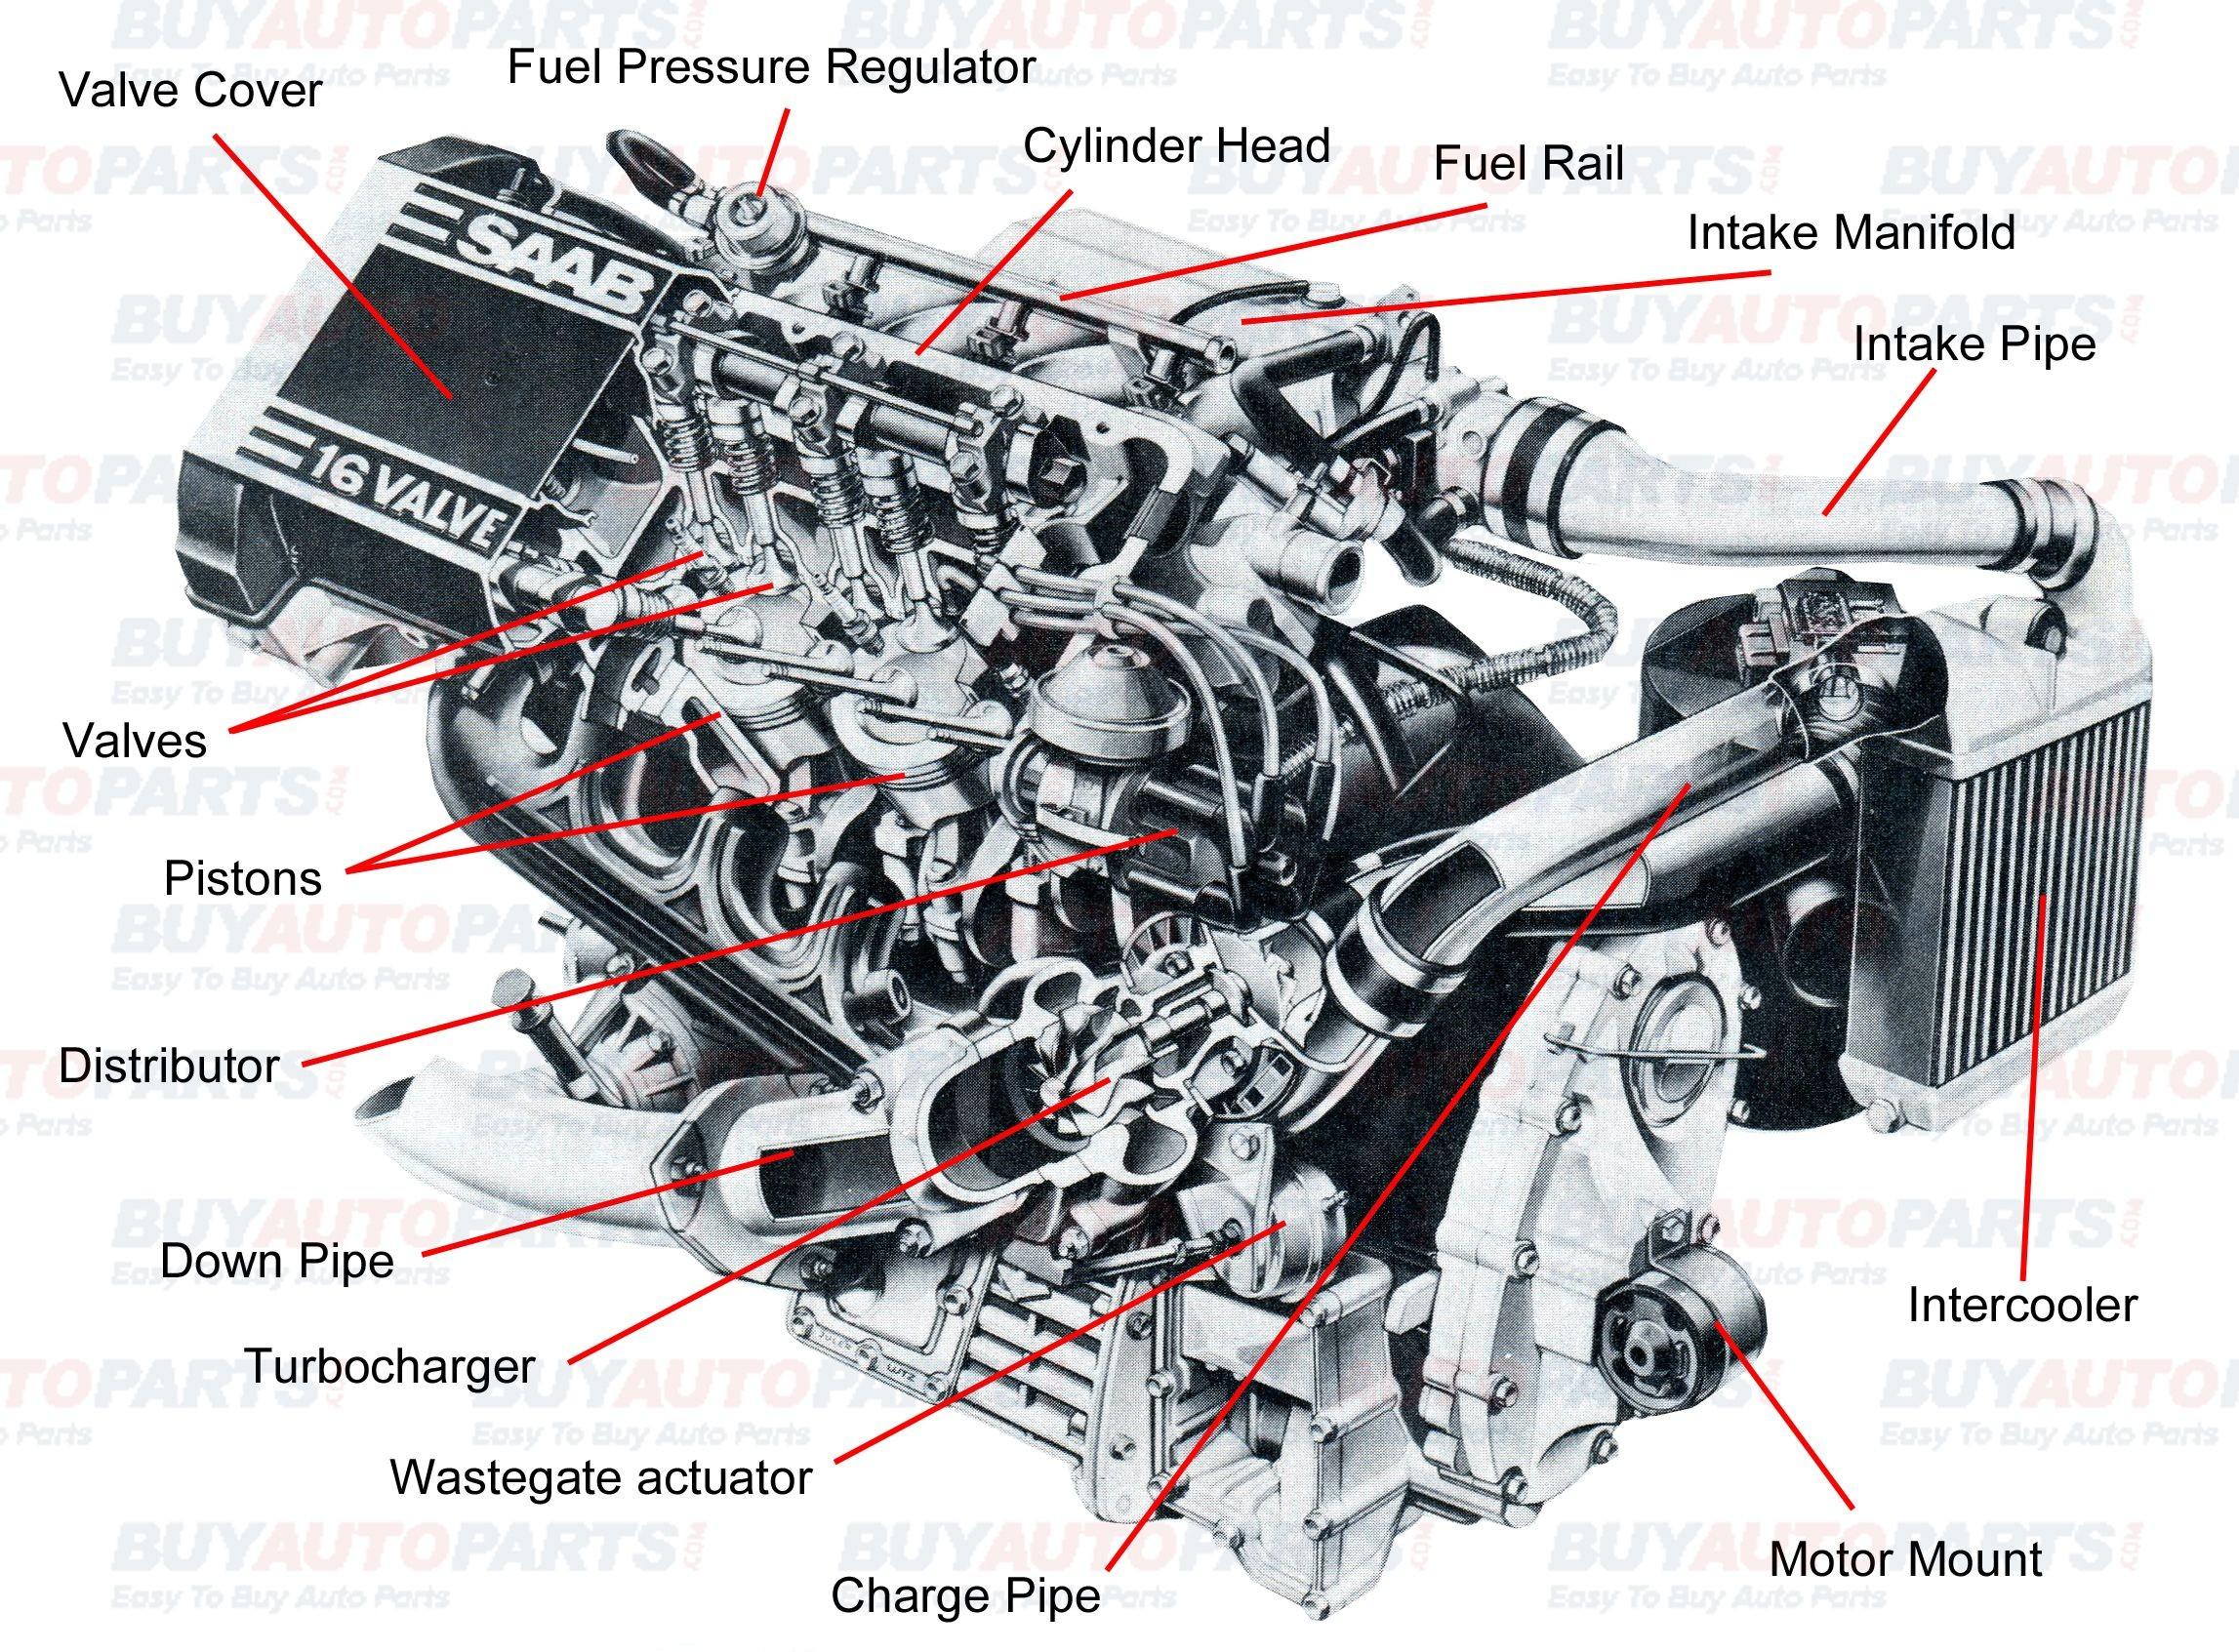 Car Radiator Diagram All Internal Bustion Engines Have the Same Basic Ponents the Of Car Radiator Diagram